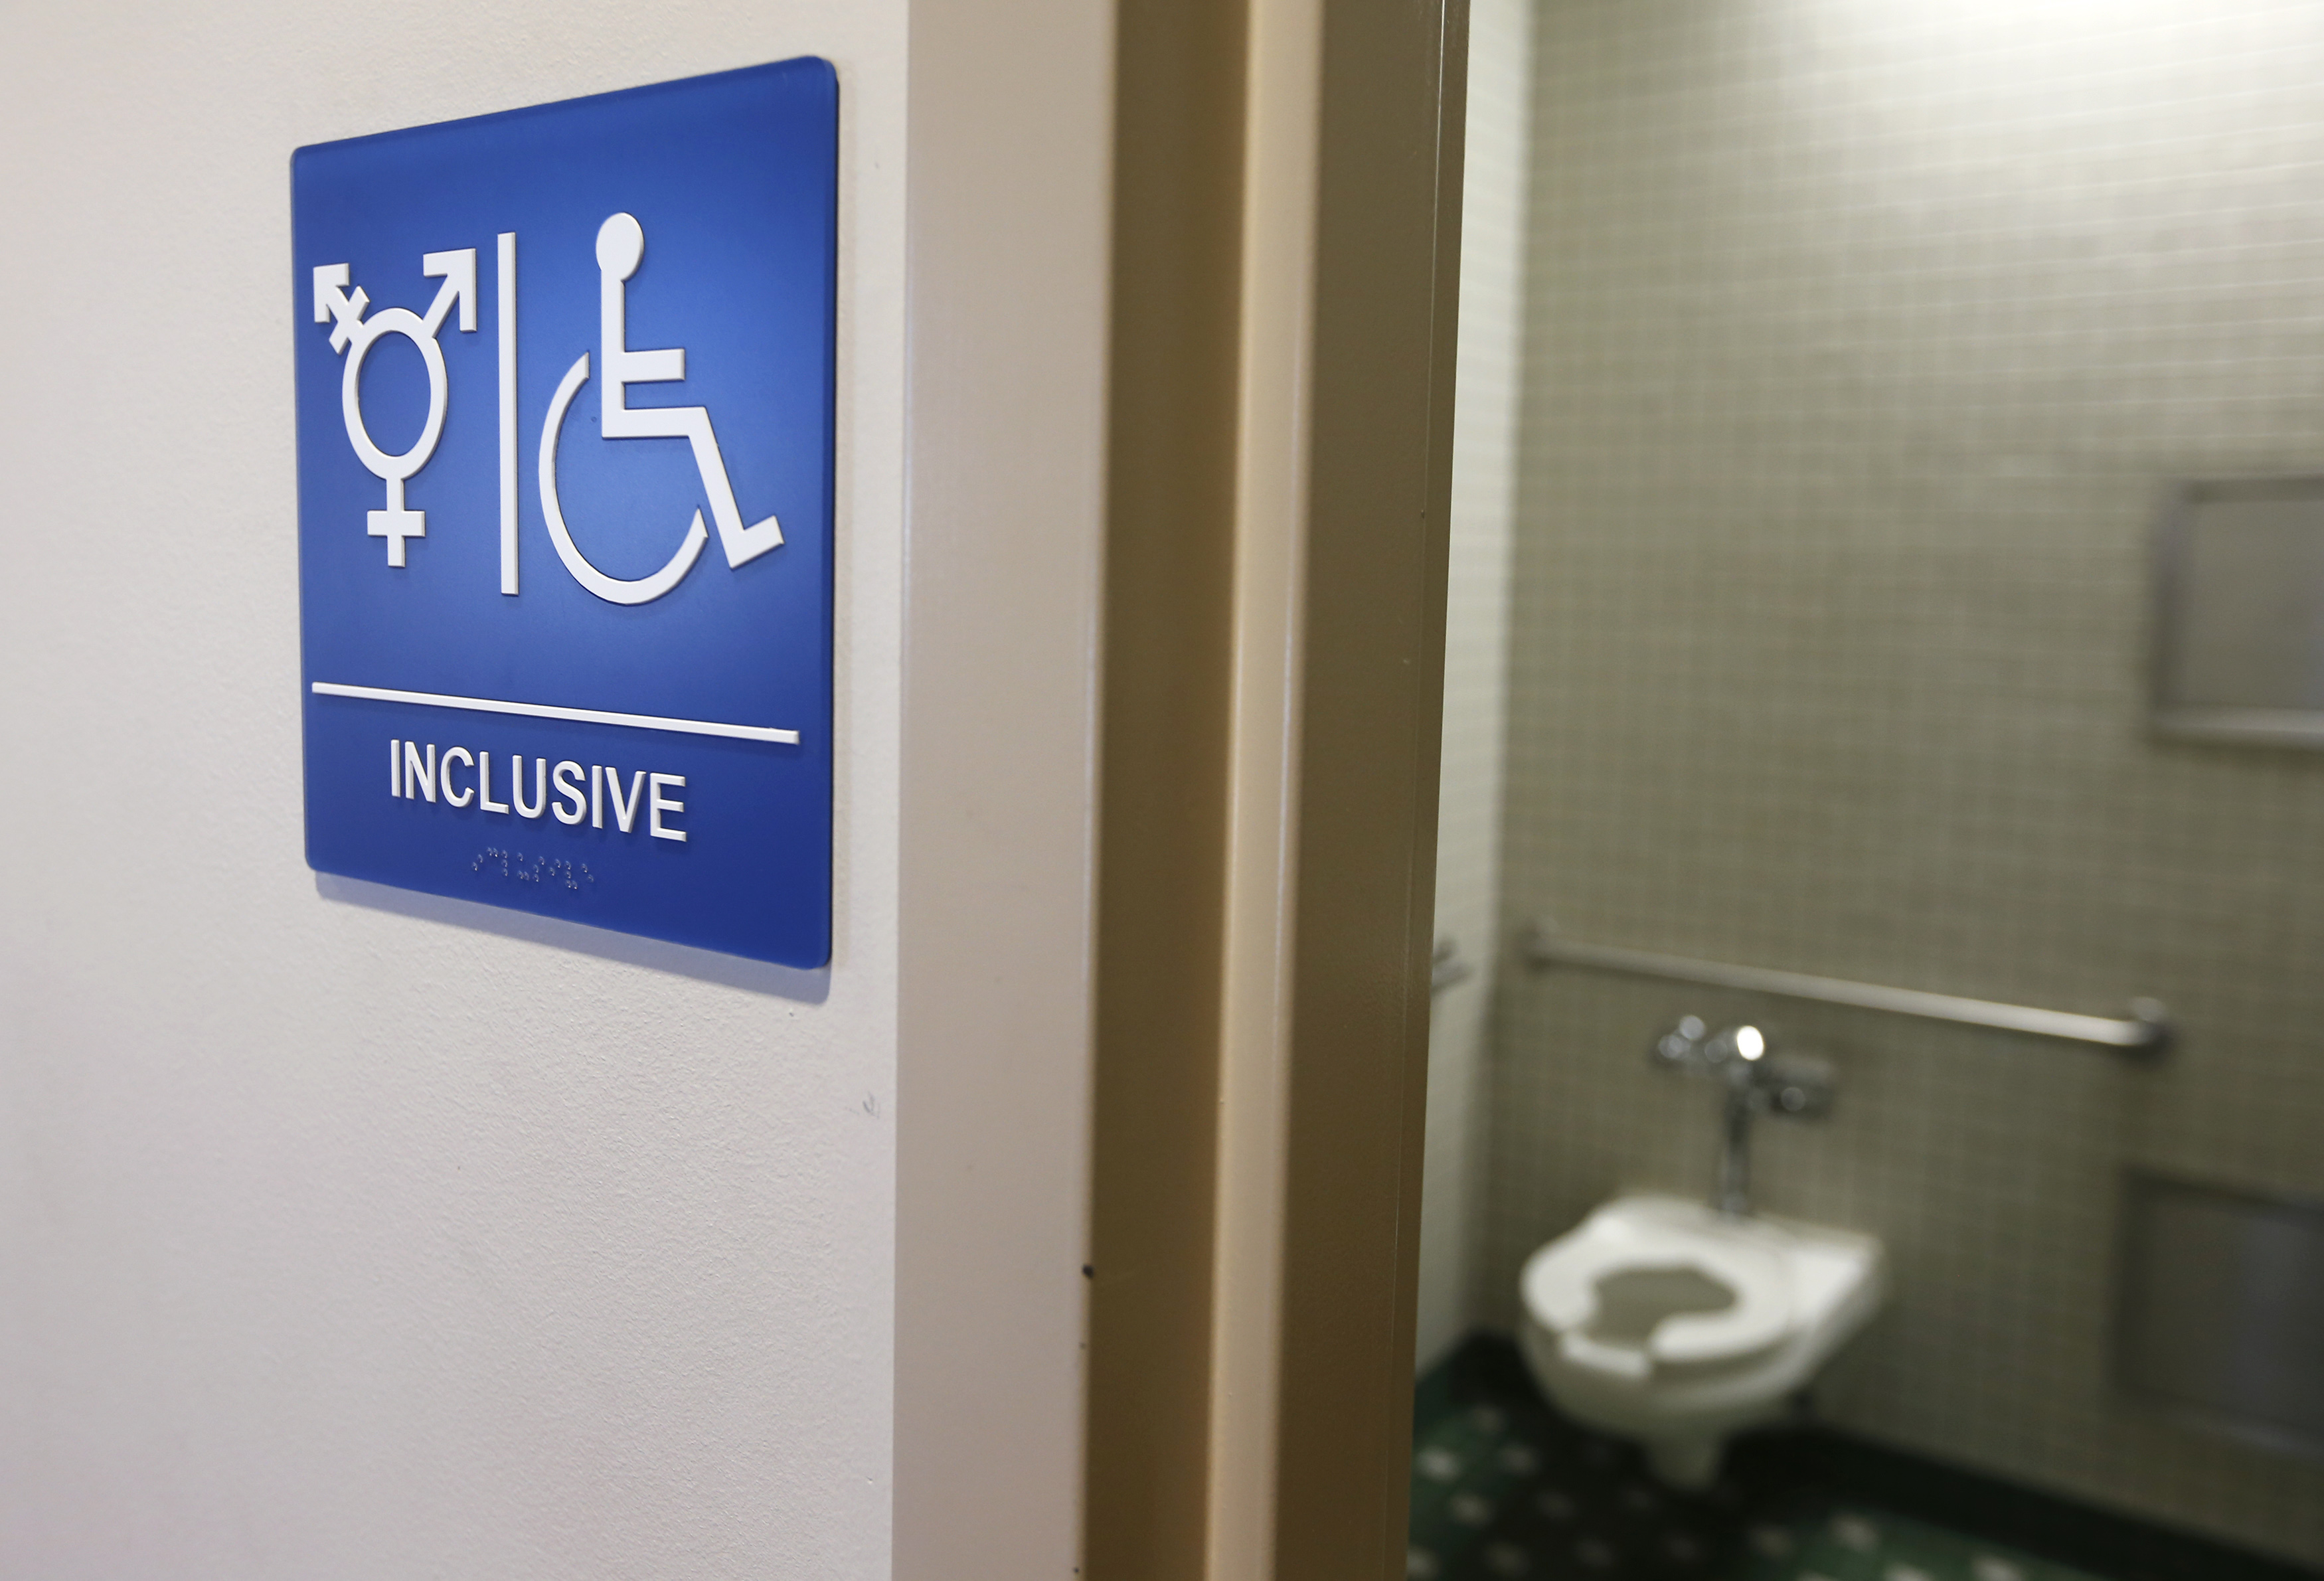 A gender-neutral bathroom is seen at the University of California, Irvine in Irvine, Calif., Sept. 30, 2014.